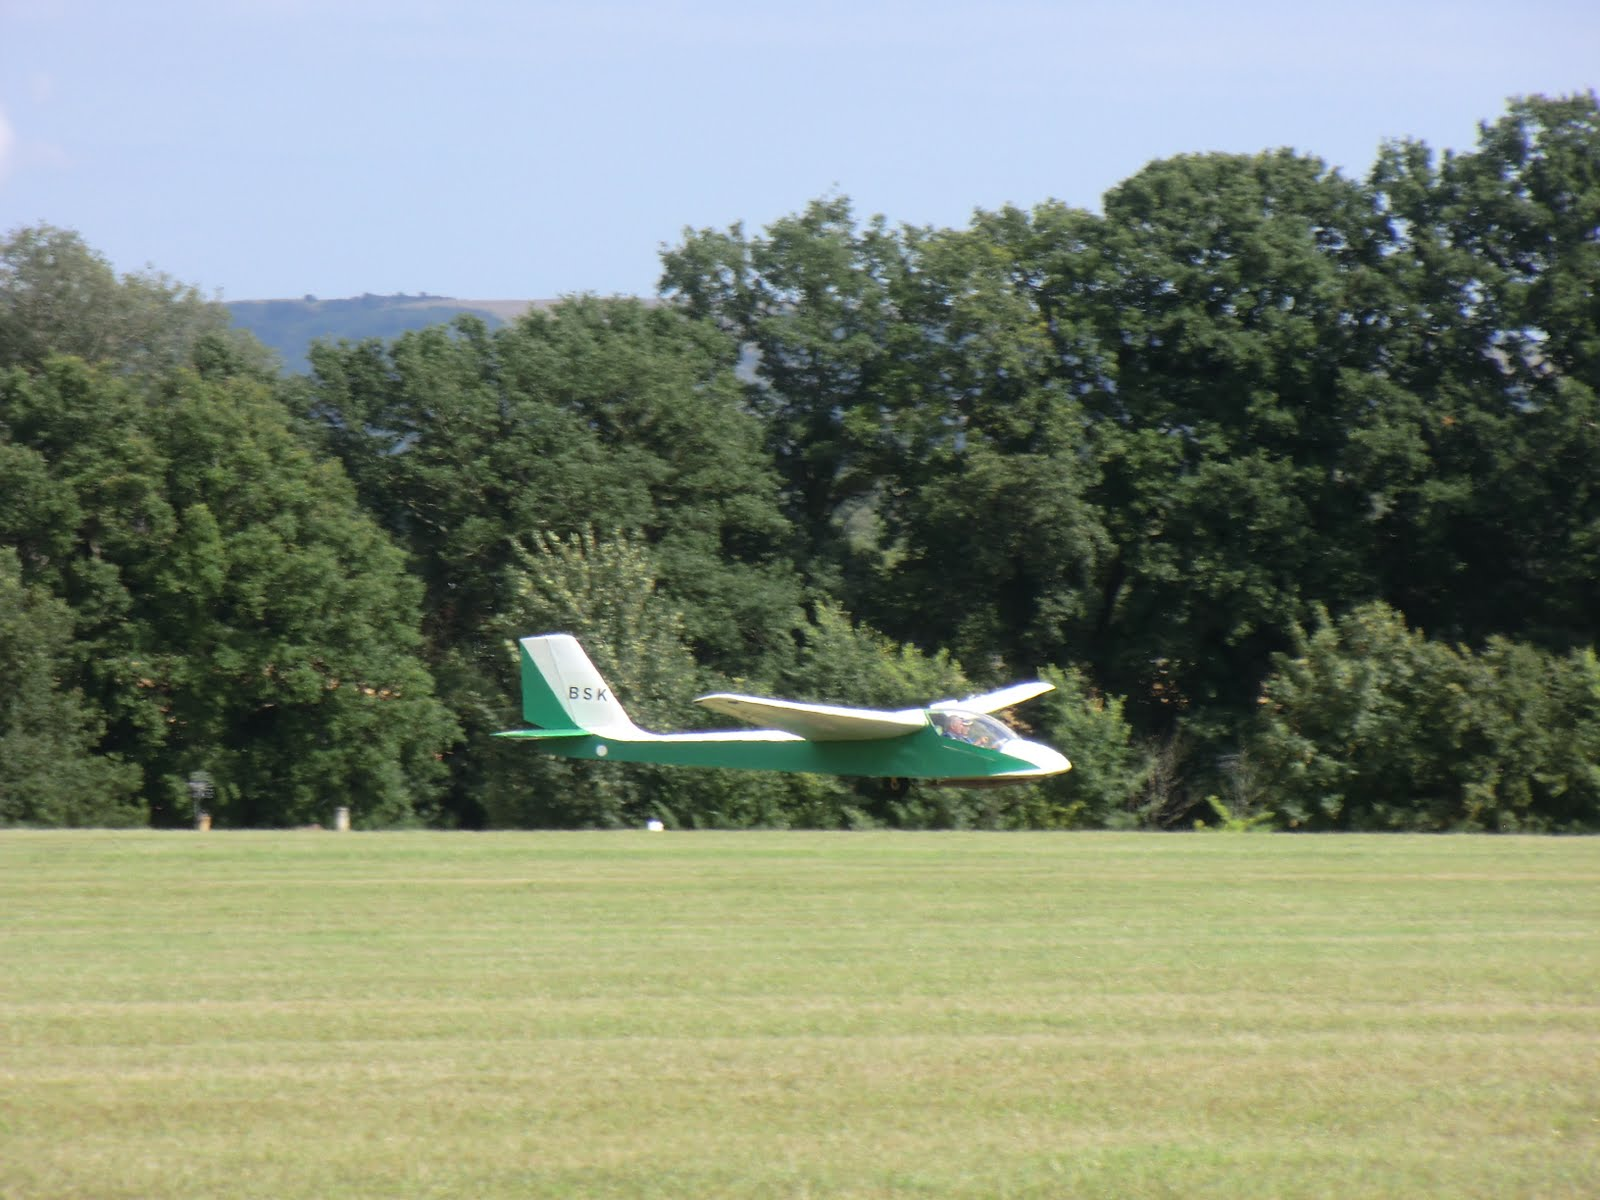 CIMG8400 Glider landing on Parham Airfield